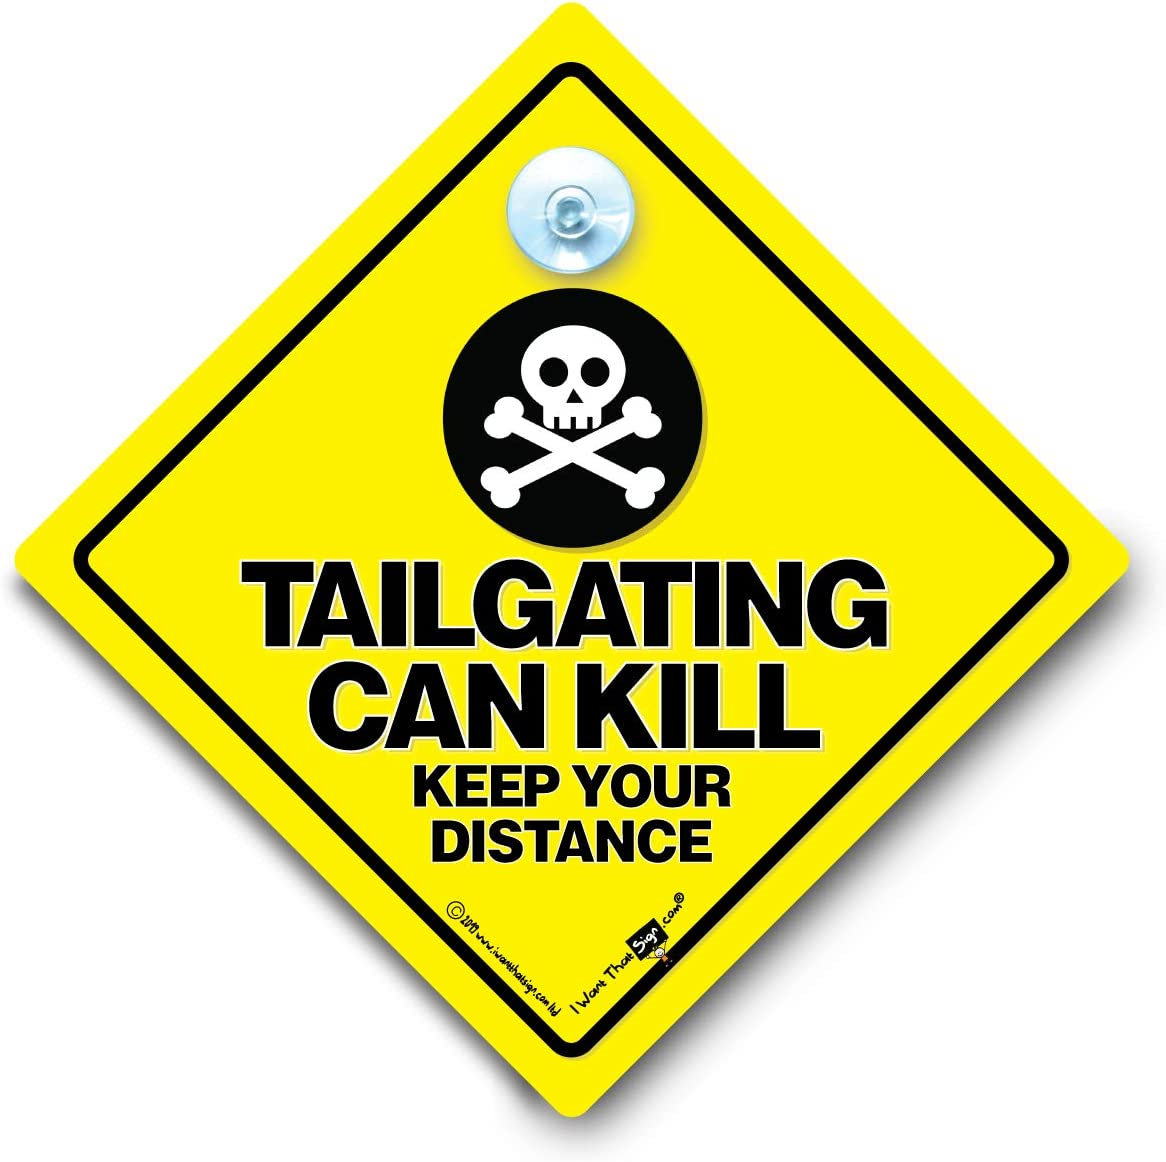 Tailgating Can Kill Keep Your Distance Car Sign Baby on Board Style Yellow and Black Anti Tailgate Sign with Rubber Suction Cup